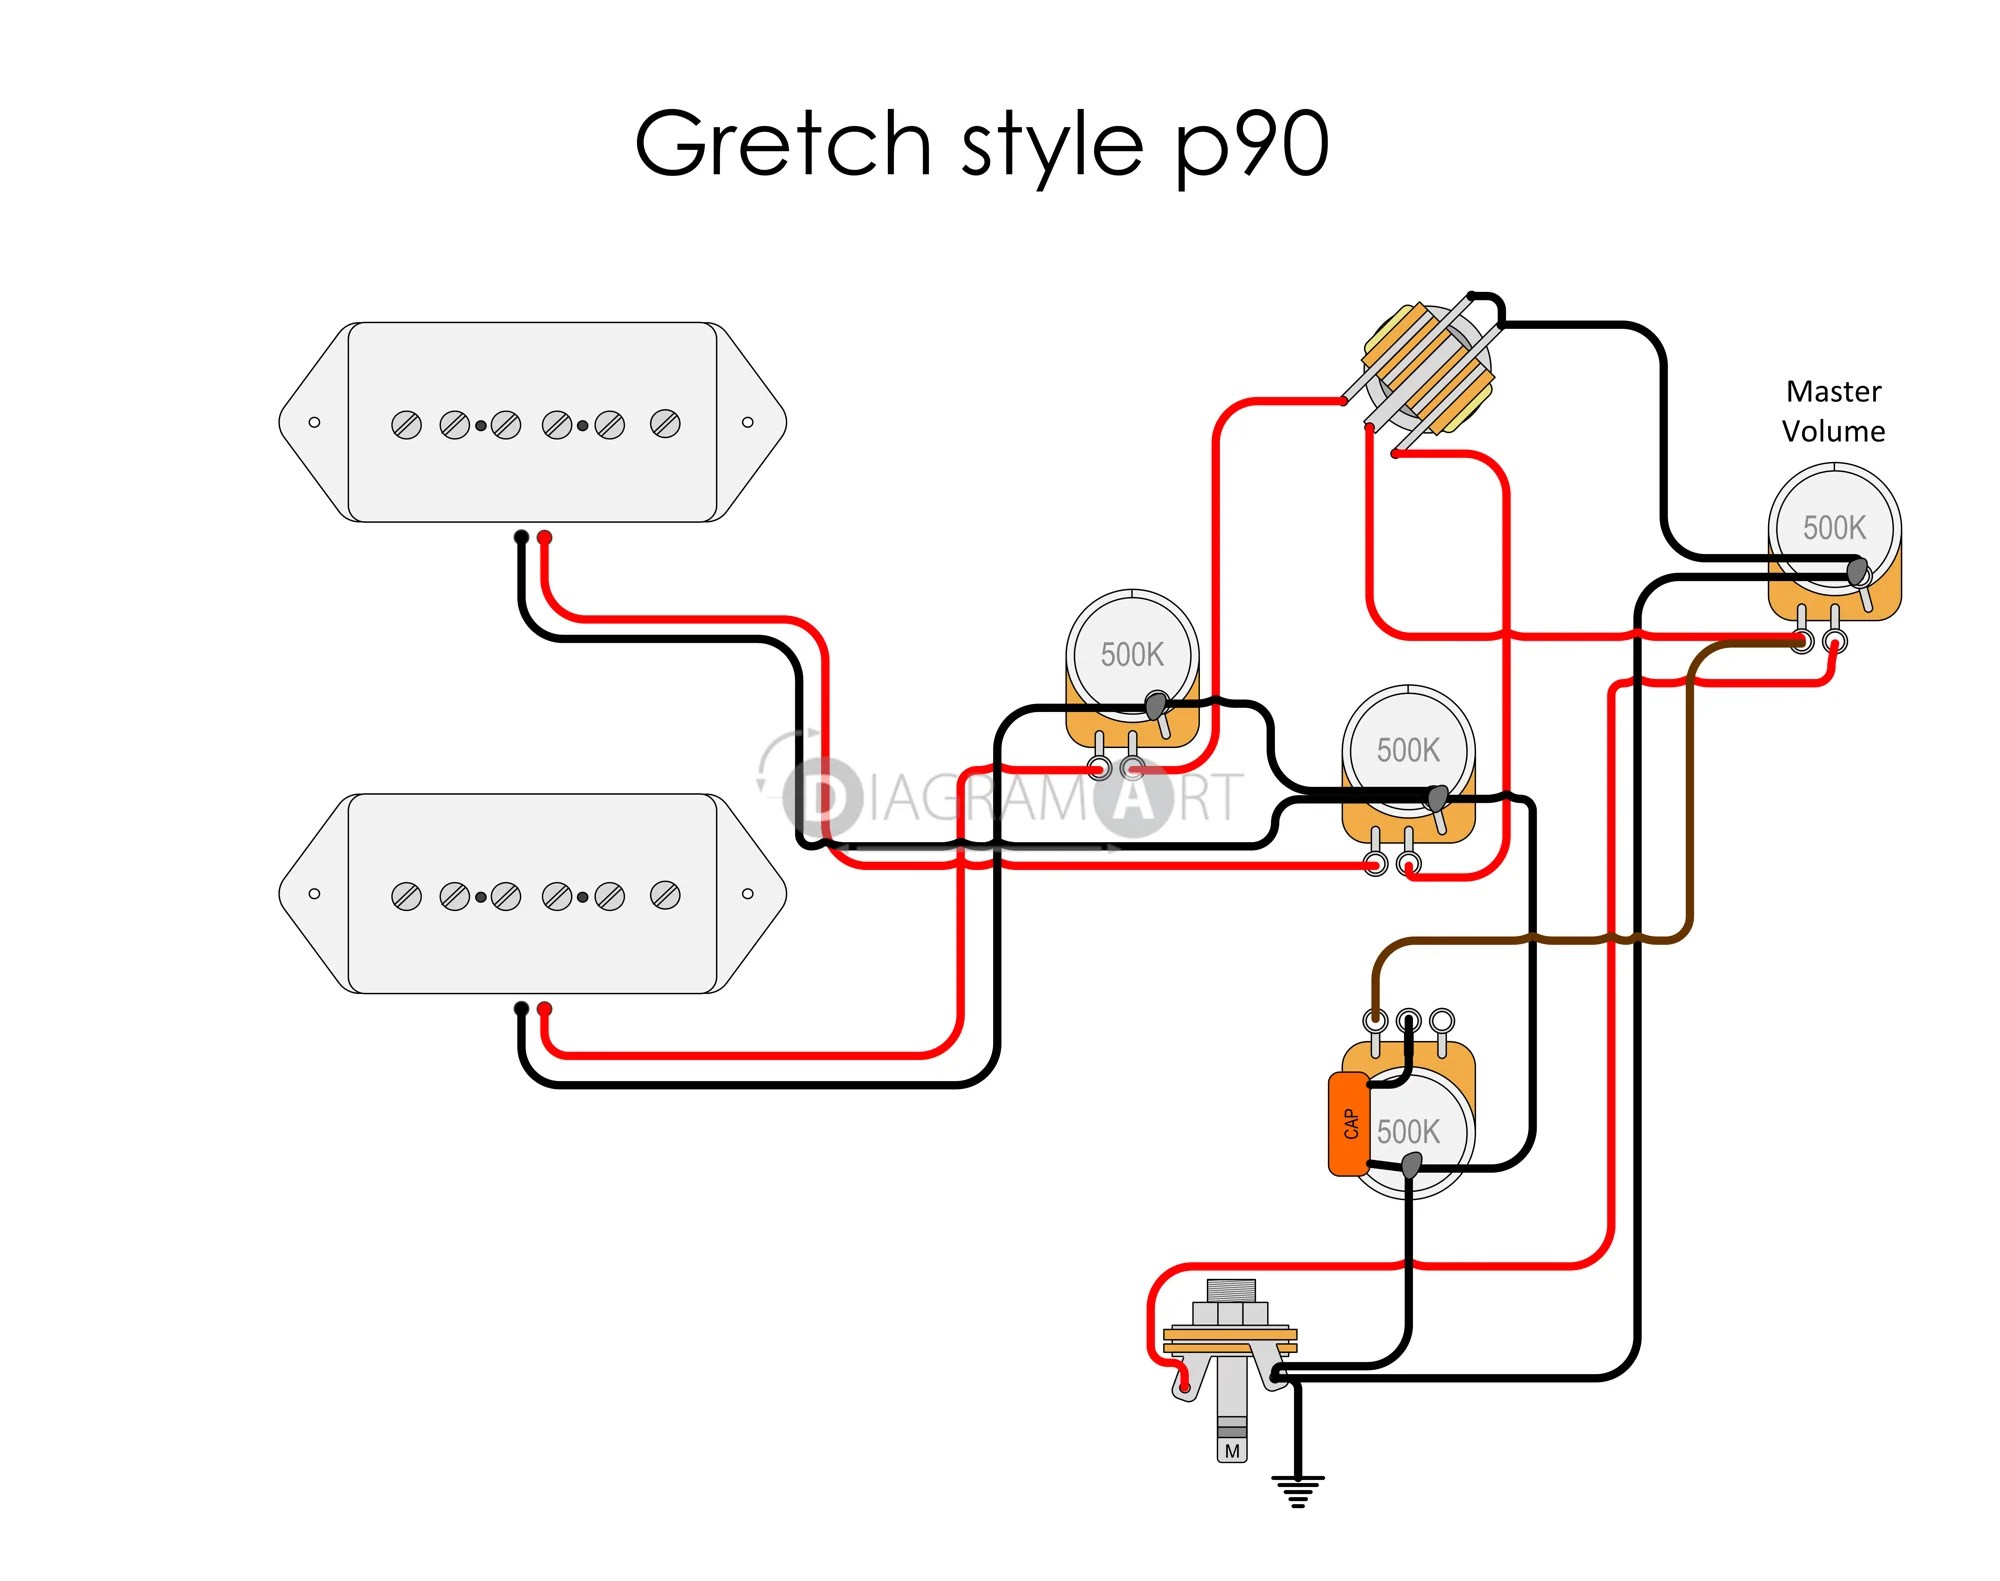 hight resolution of gibson p 90 guitar wiring diagrams wiring diagrams export 2006 yfz 450 wiring diagram gibson p90 pickup wiring diagram